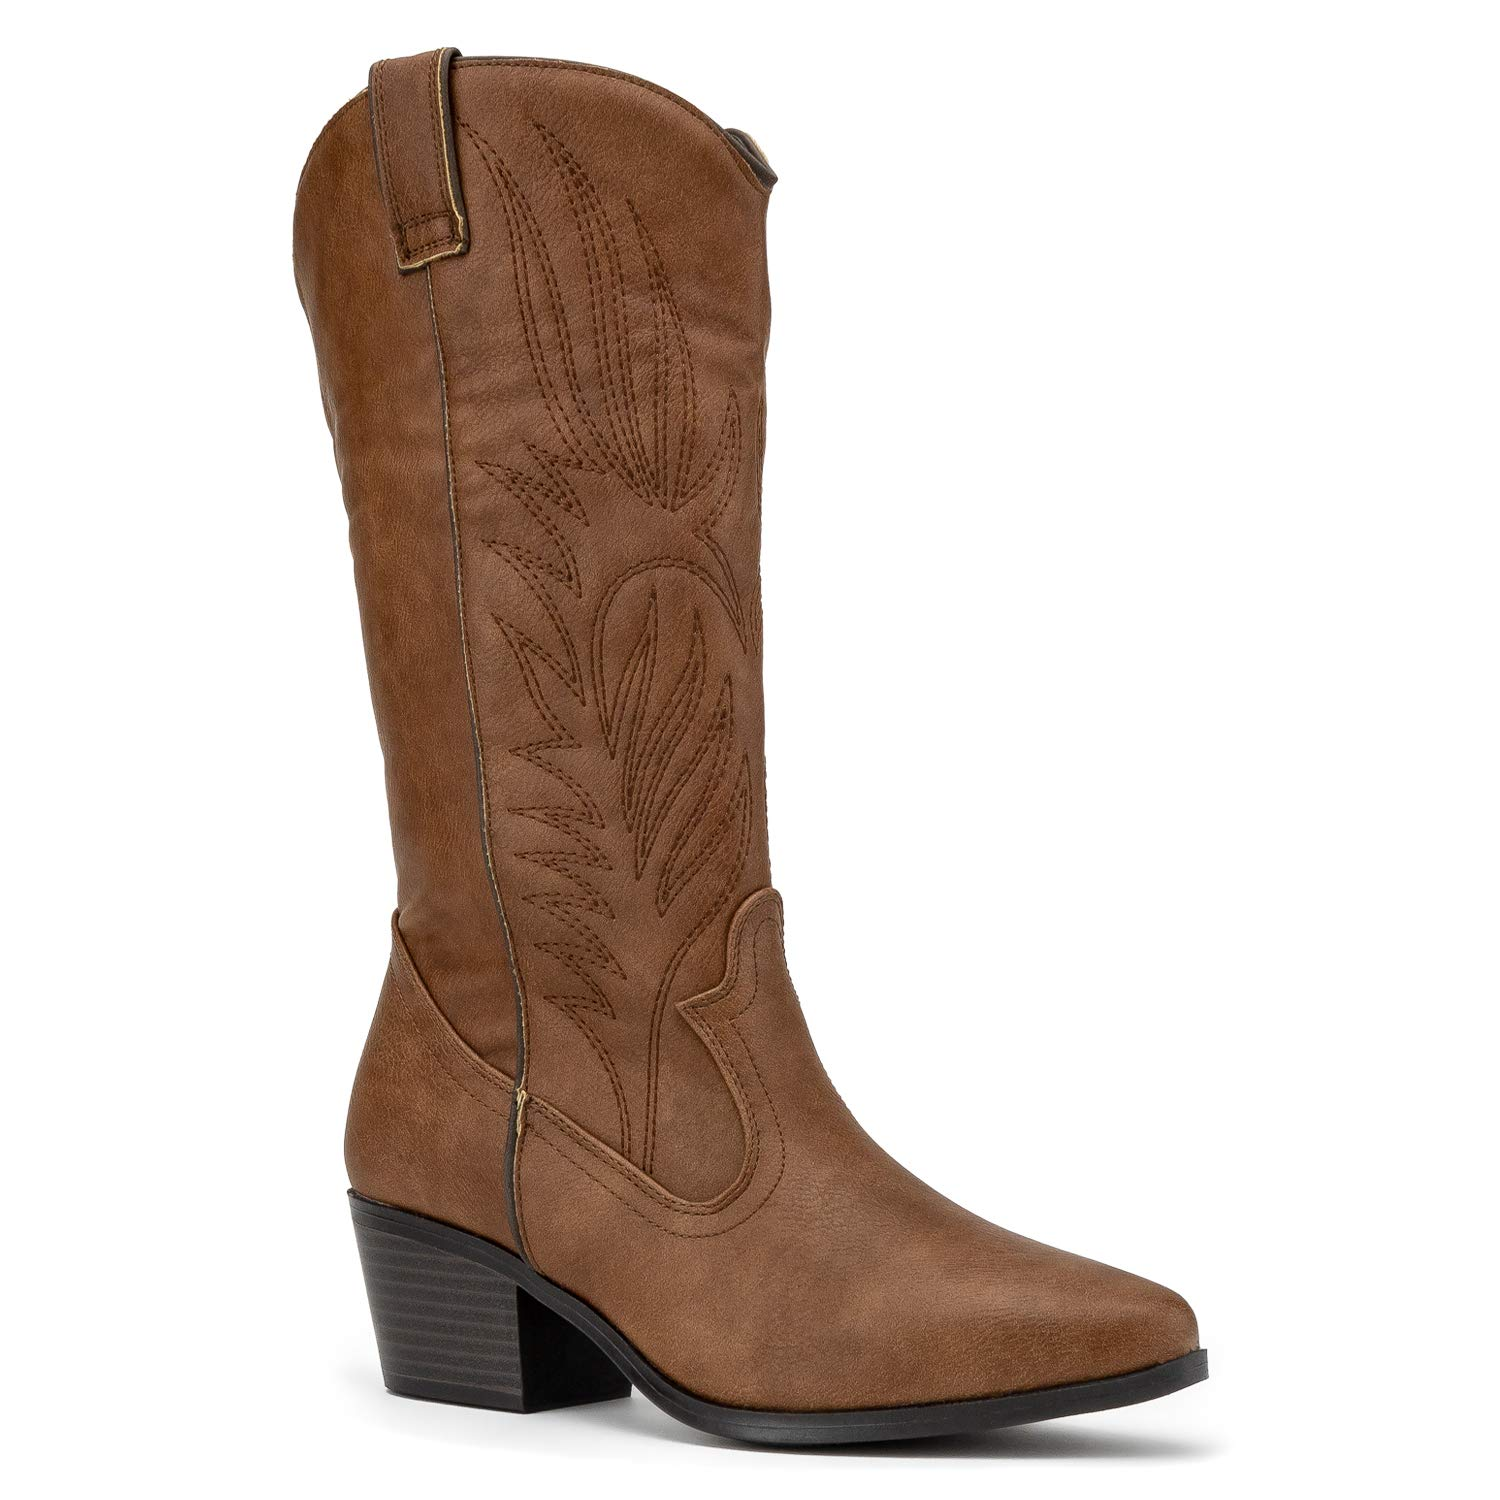 RF ROOM OF FASHION Women's Pointy Toe Low Stacked Heel Western Cowboy Pull on Boots Cognac (8)